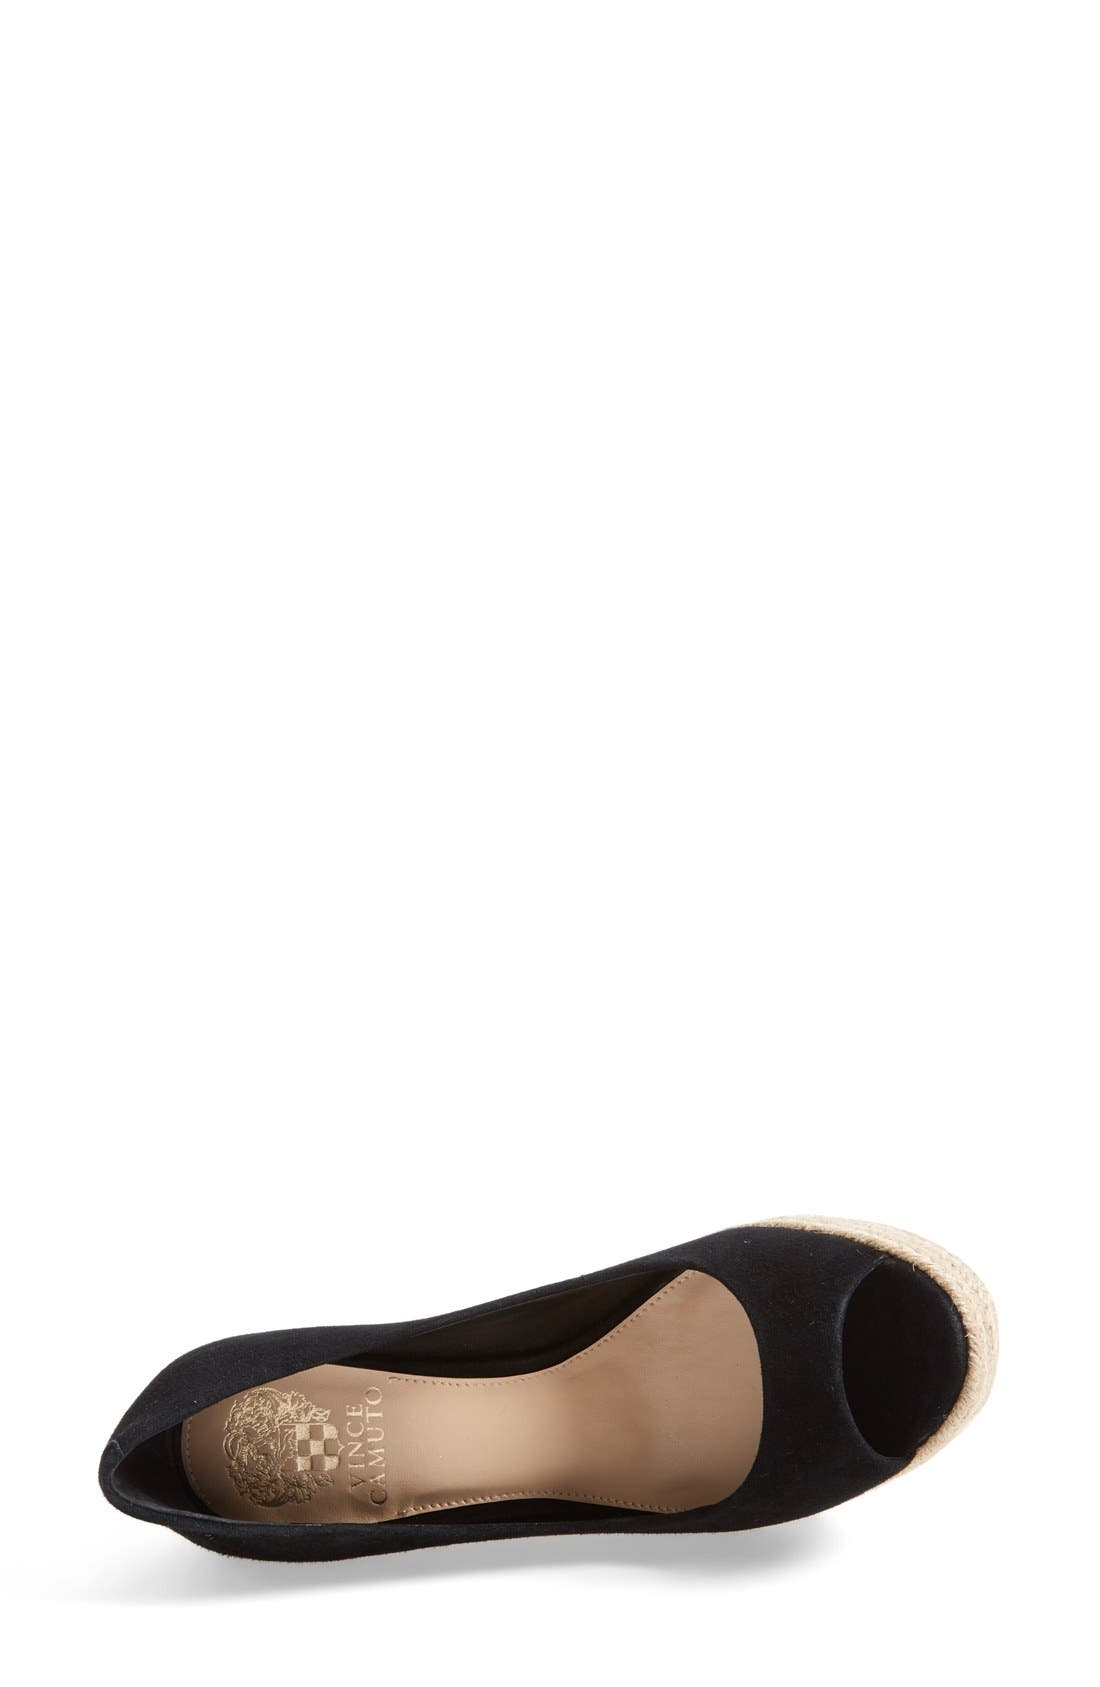 'Totsi' Peep Toe Espadrille Wedge,                             Alternate thumbnail 3, color,                             001